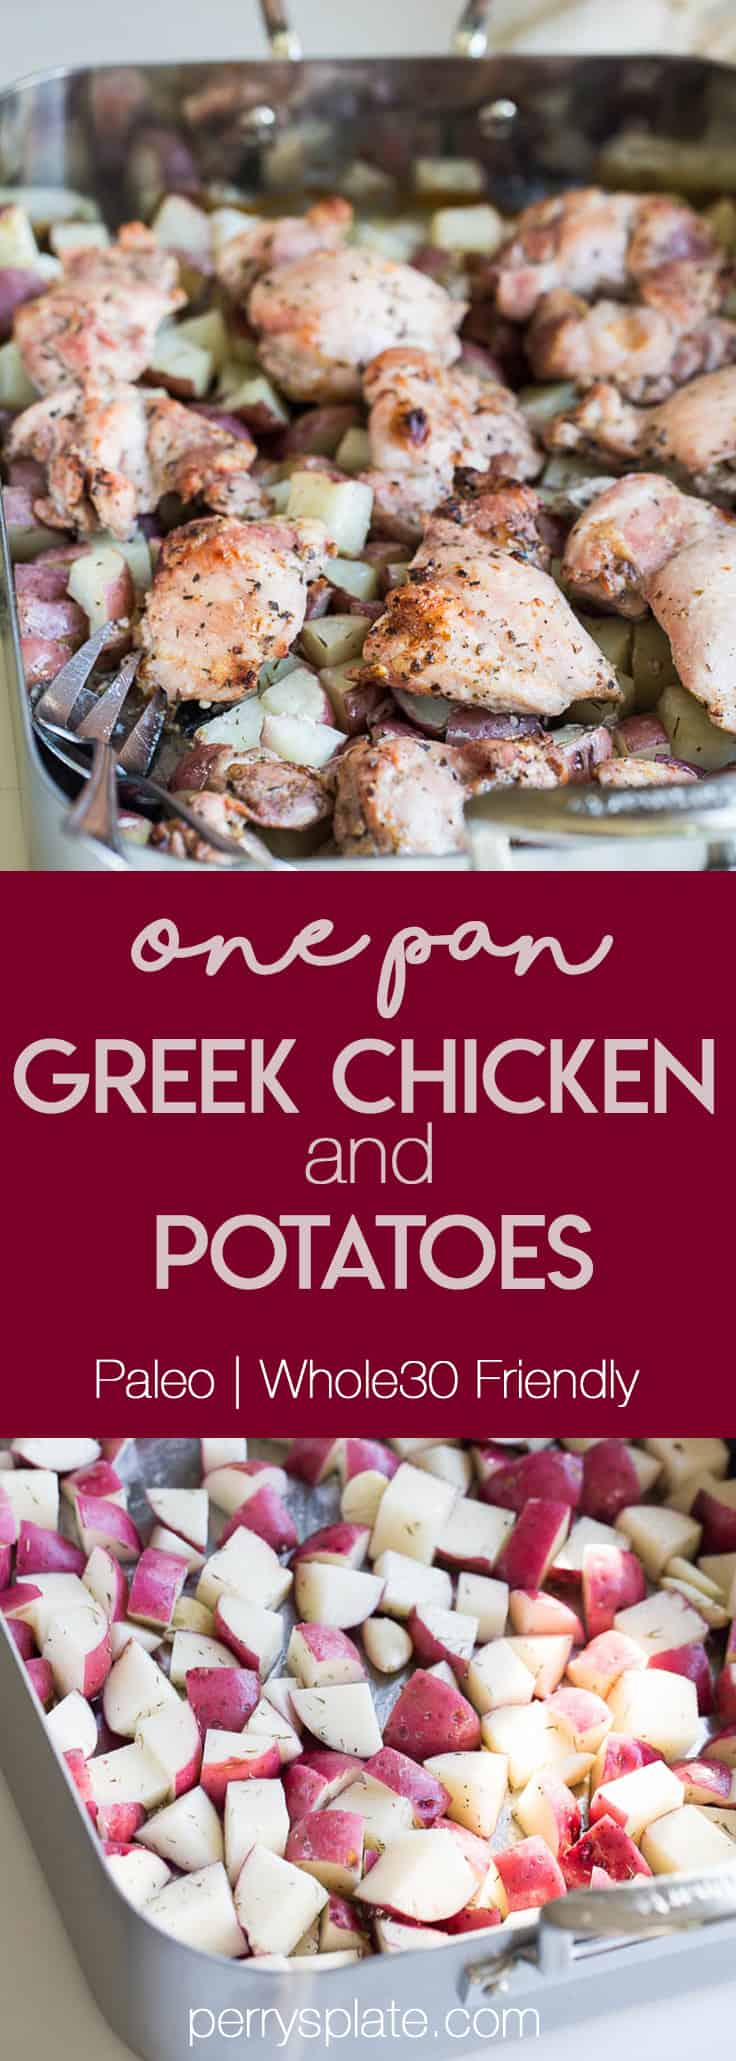 One-Pan Greek Chicken & Potatoes | weeknight dinner recipes | paleo recipes | Whole30 recipes | gluten-free recipes | chicken recipes | perrysplate.com